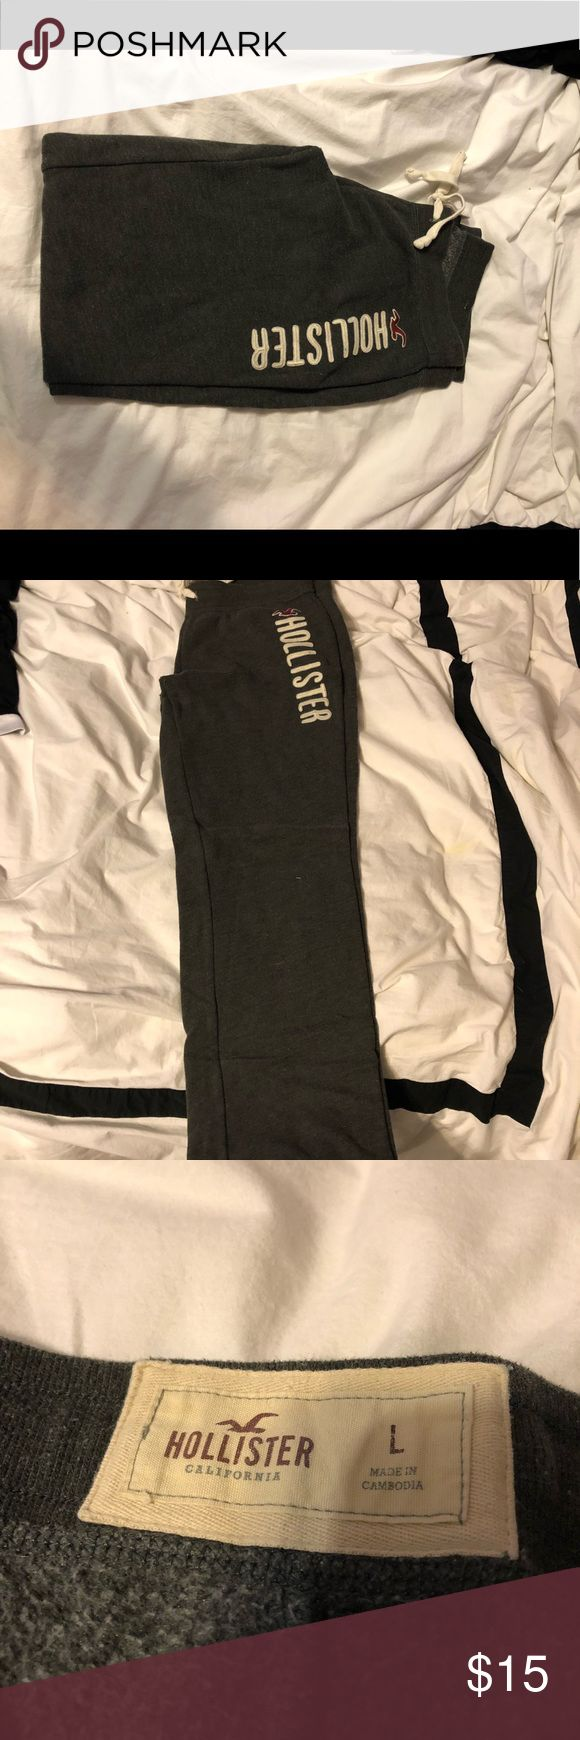 Hollister Sweatpants Gray hollister sweatpants  Great condition  Super comfy Straight leg style Hollister Pants